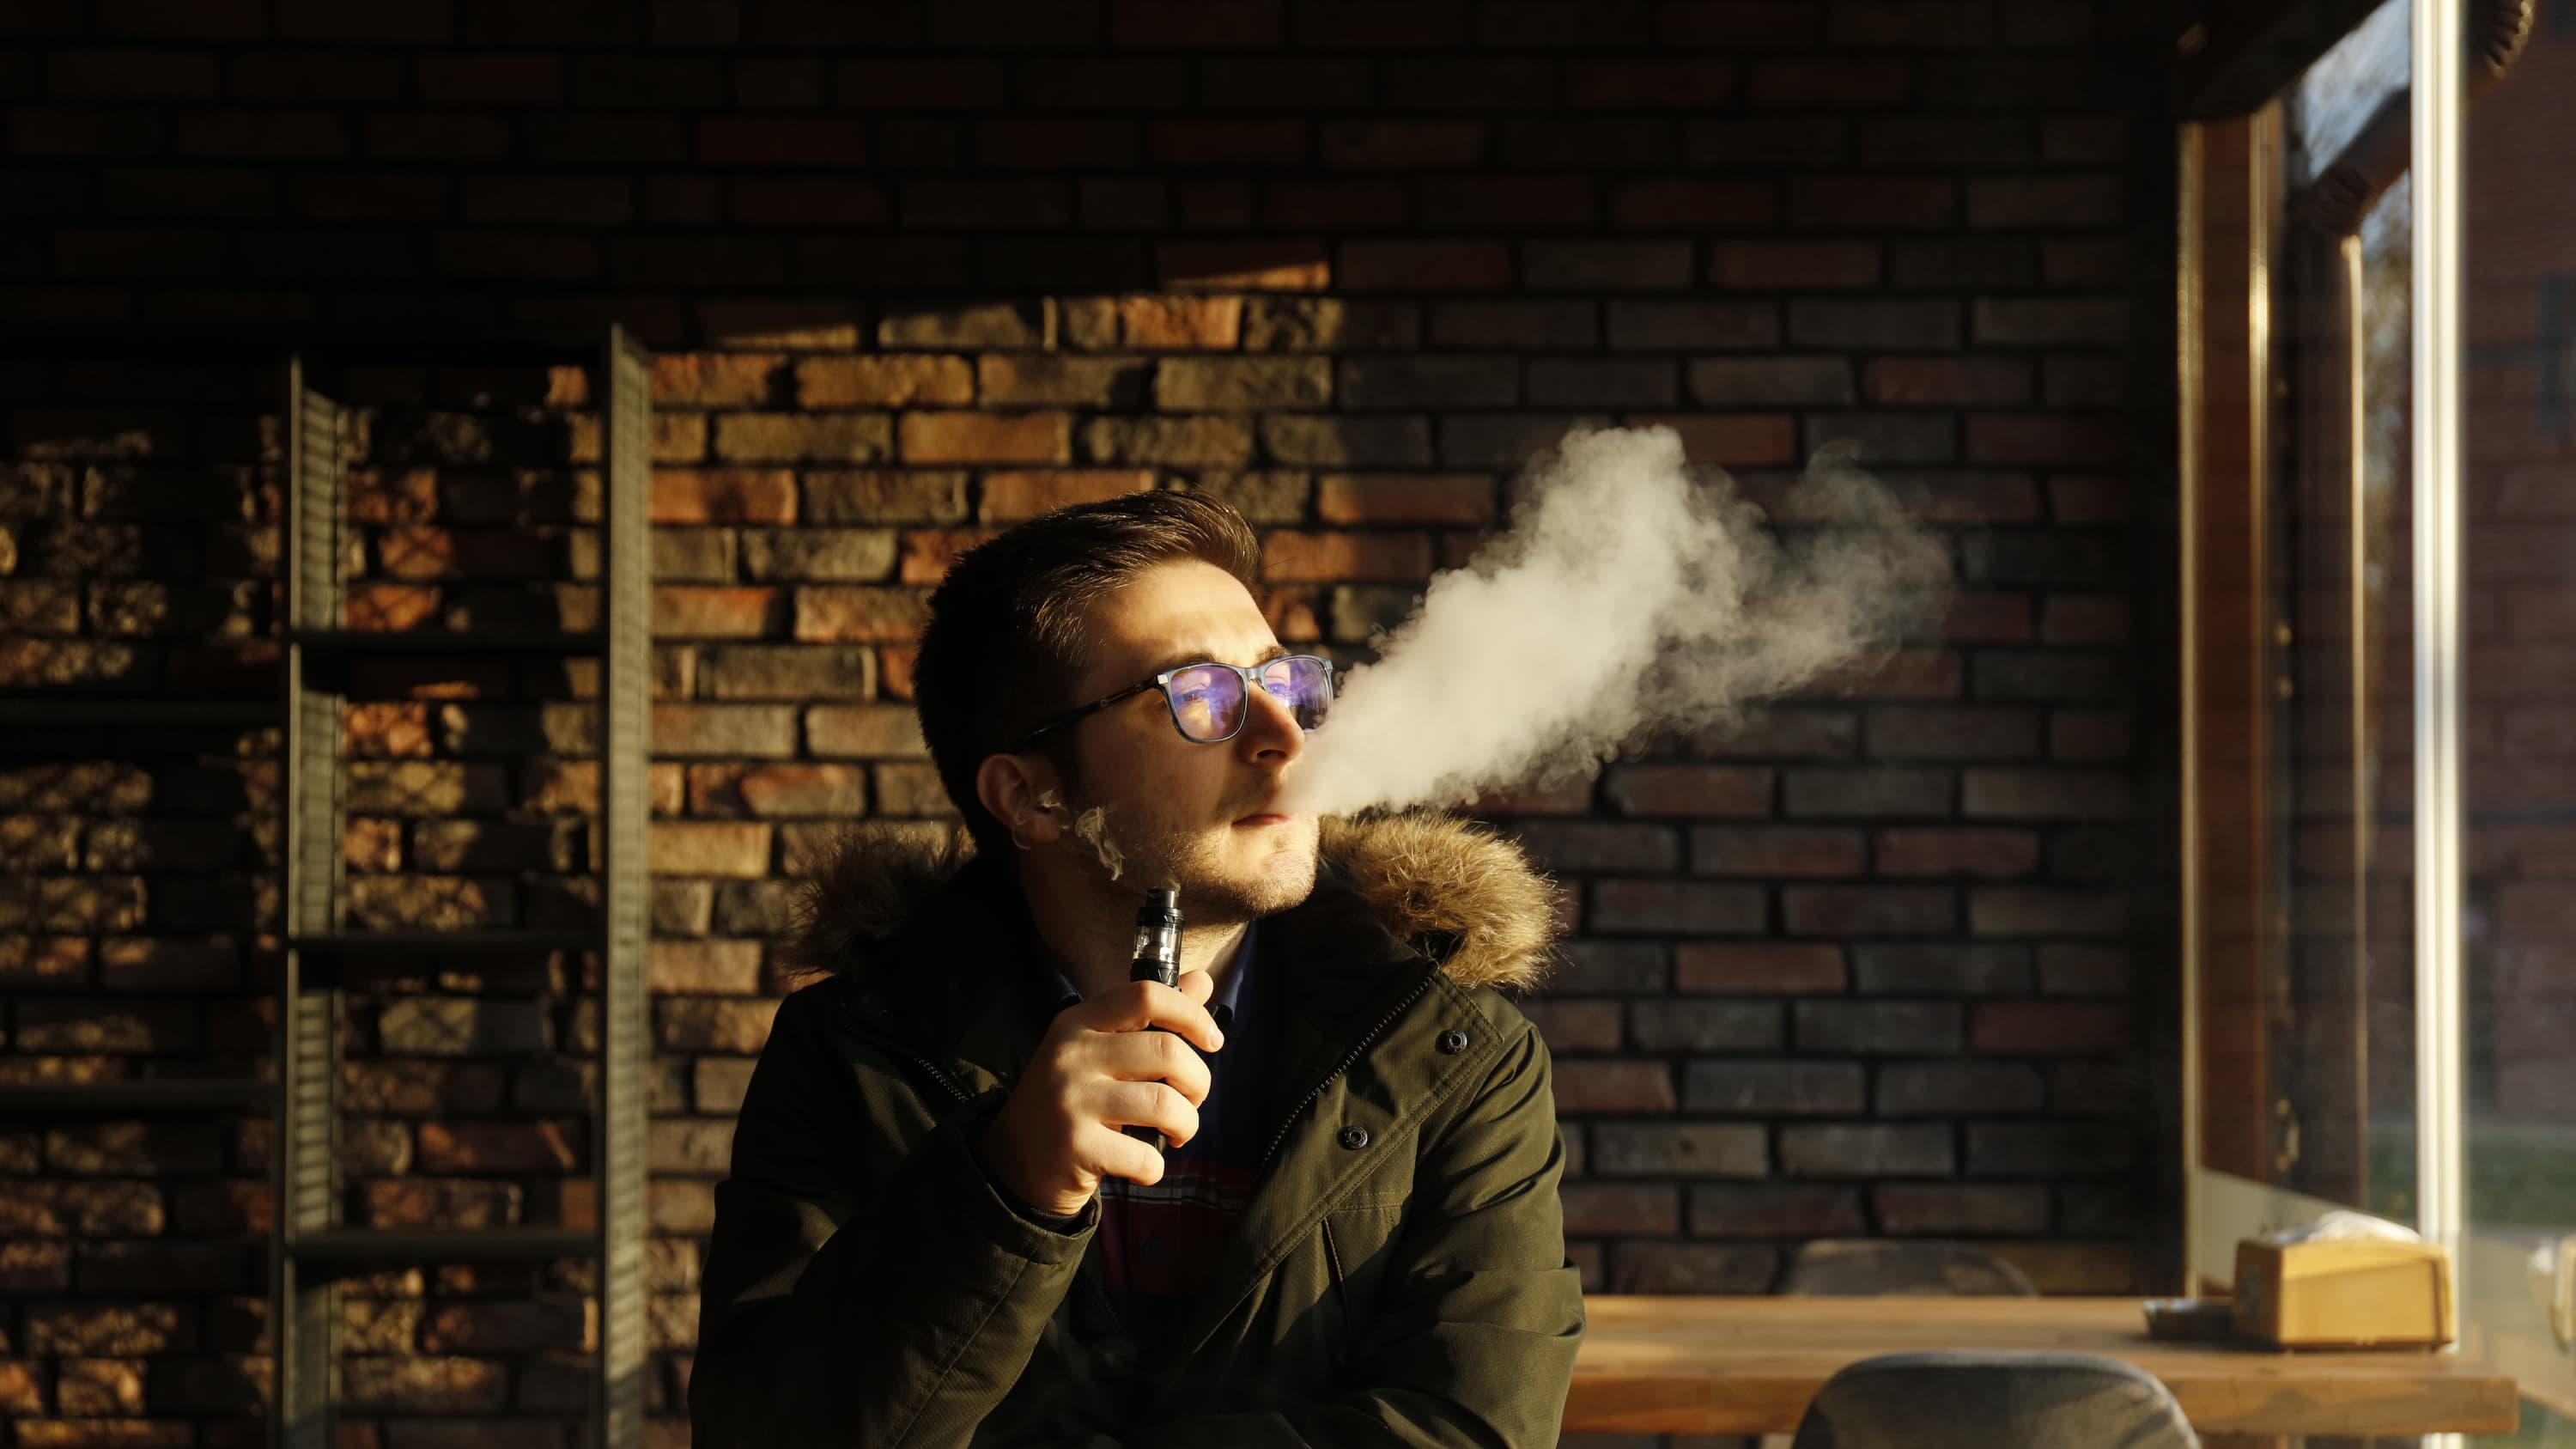 teen vaping, possibly unaware of the addictiveness of nicotine